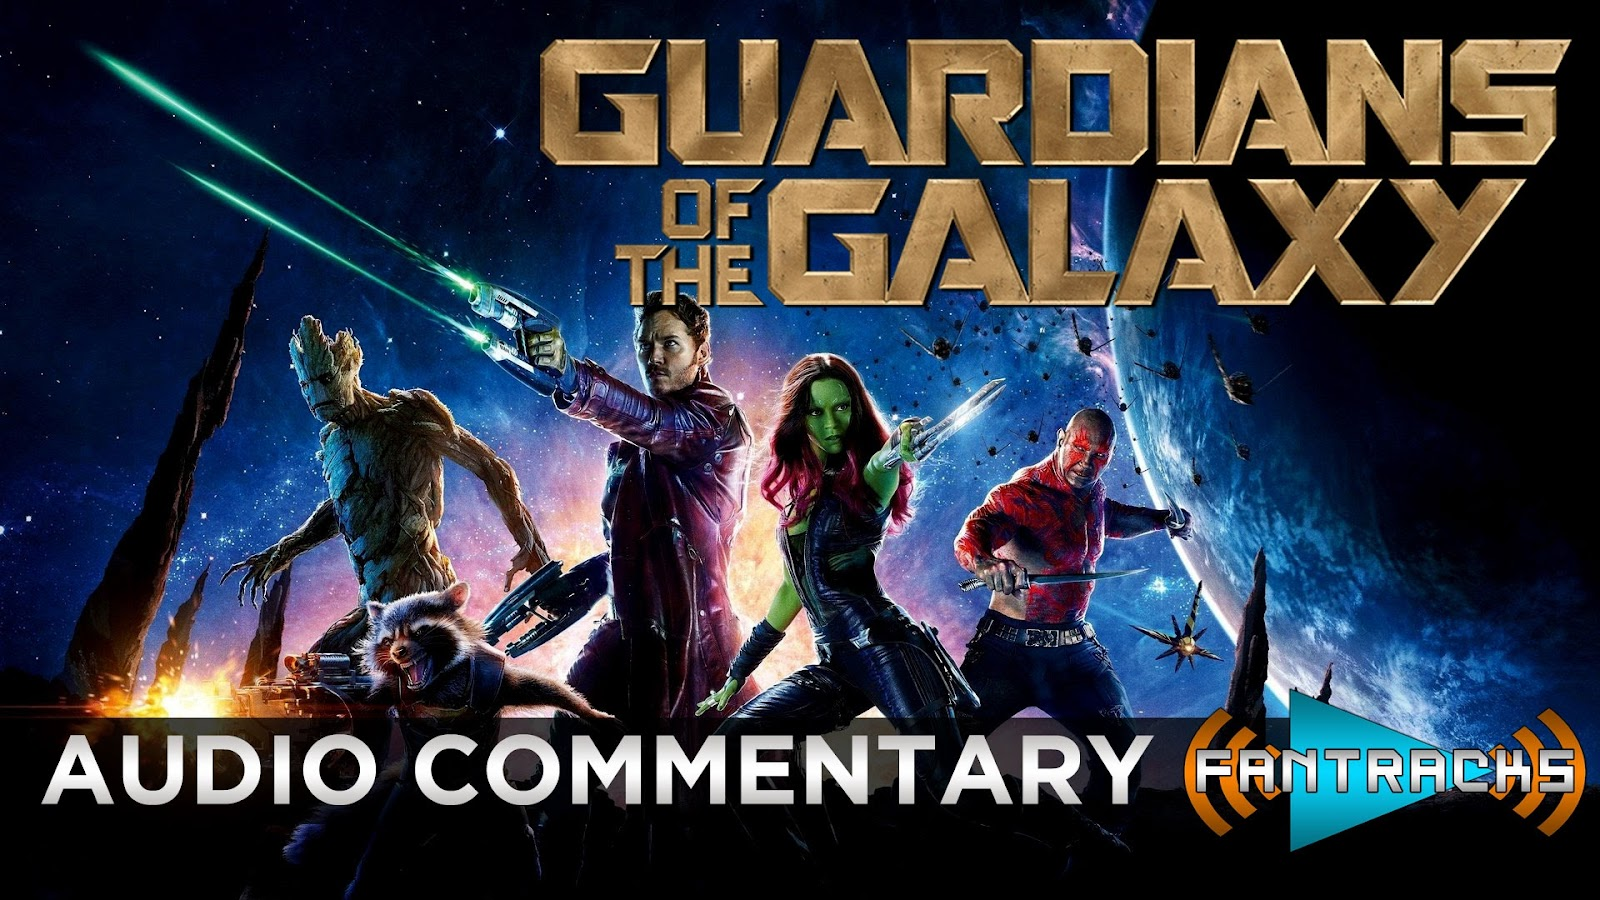 FanTracks Guardians of the Galaxy audio commentary